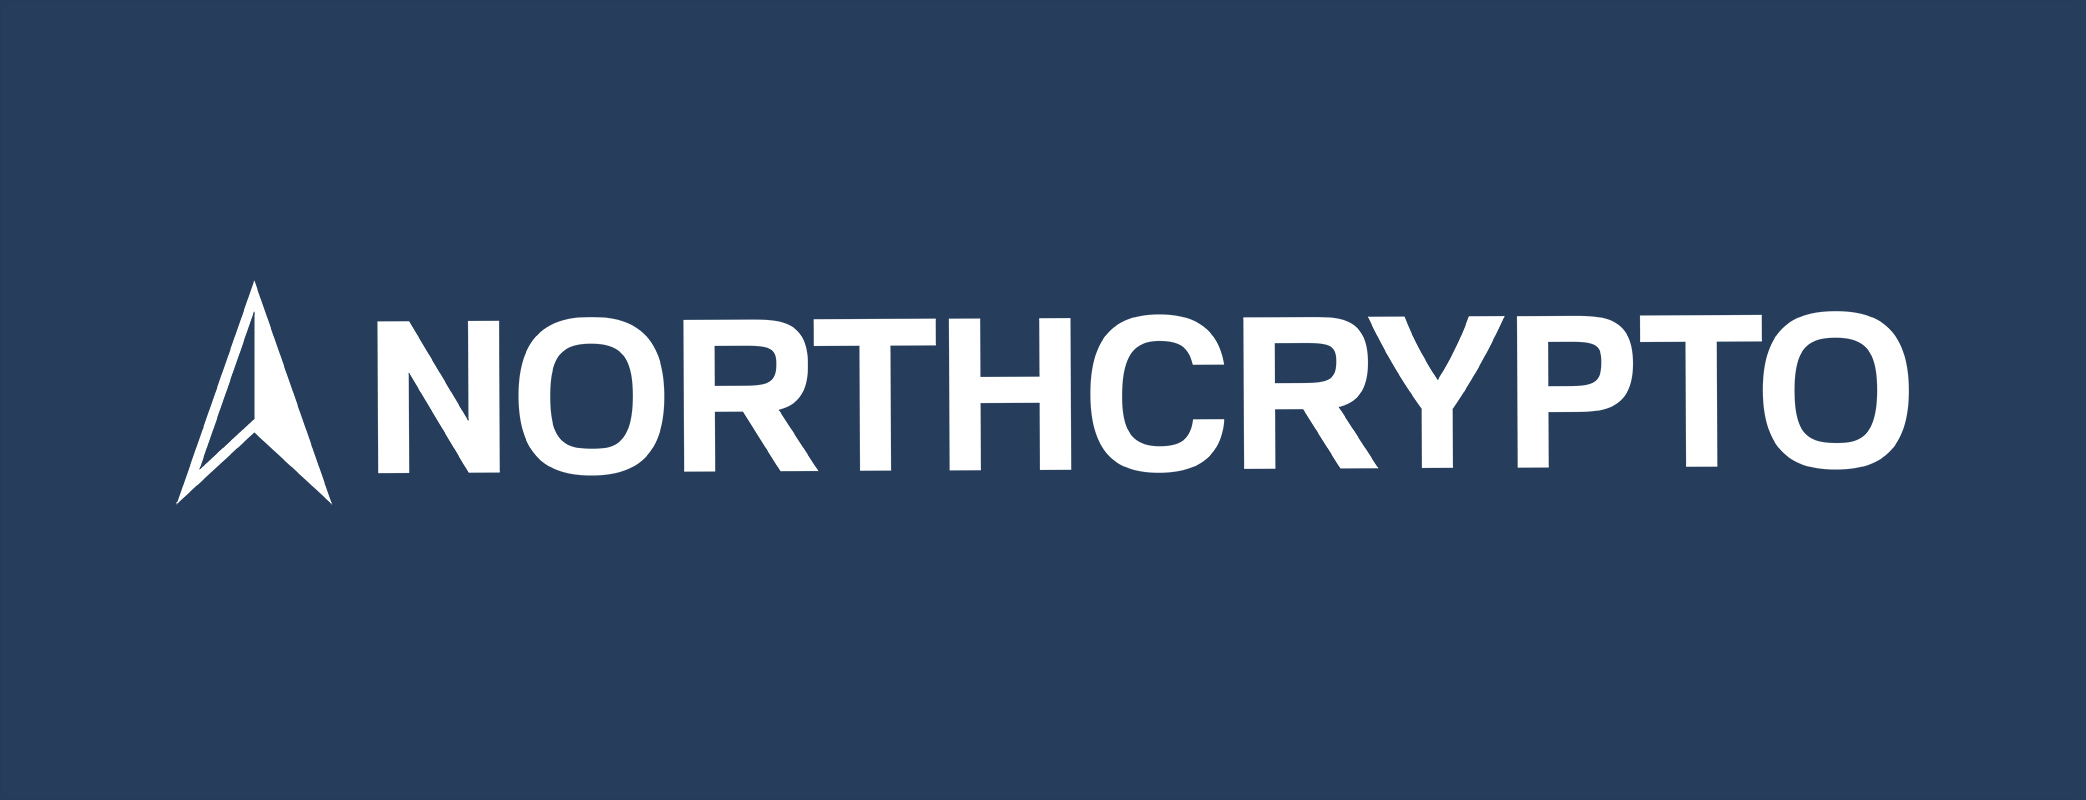 Northcrypto added to the FIN-FSA register as a virtual currency provider